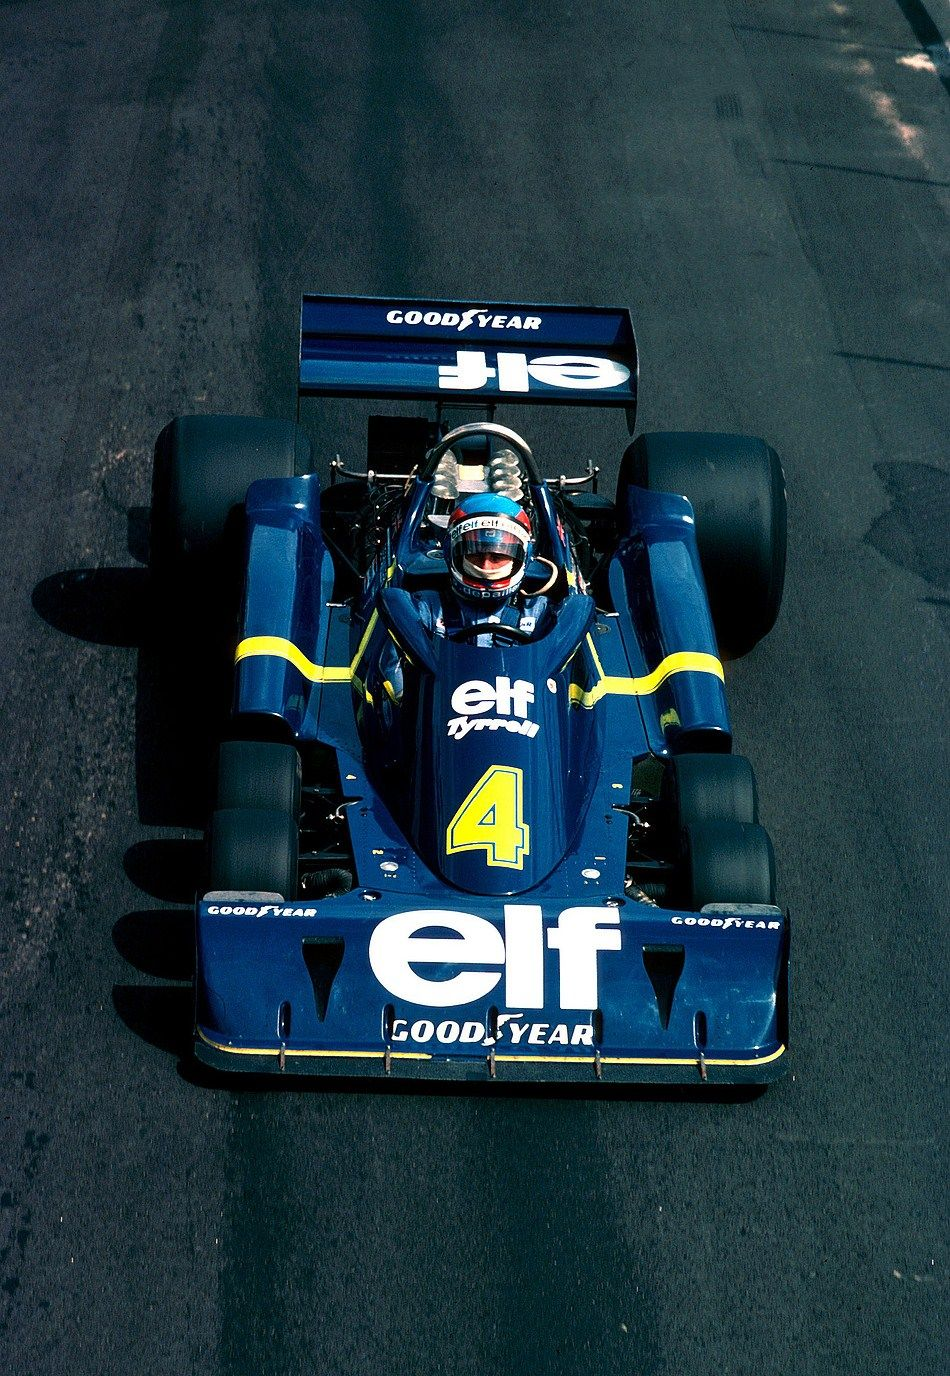 f1pictures patrick depailler tyrrell ford 1976 f1 tyrrell p34 six wheeler pinterest. Black Bedroom Furniture Sets. Home Design Ideas